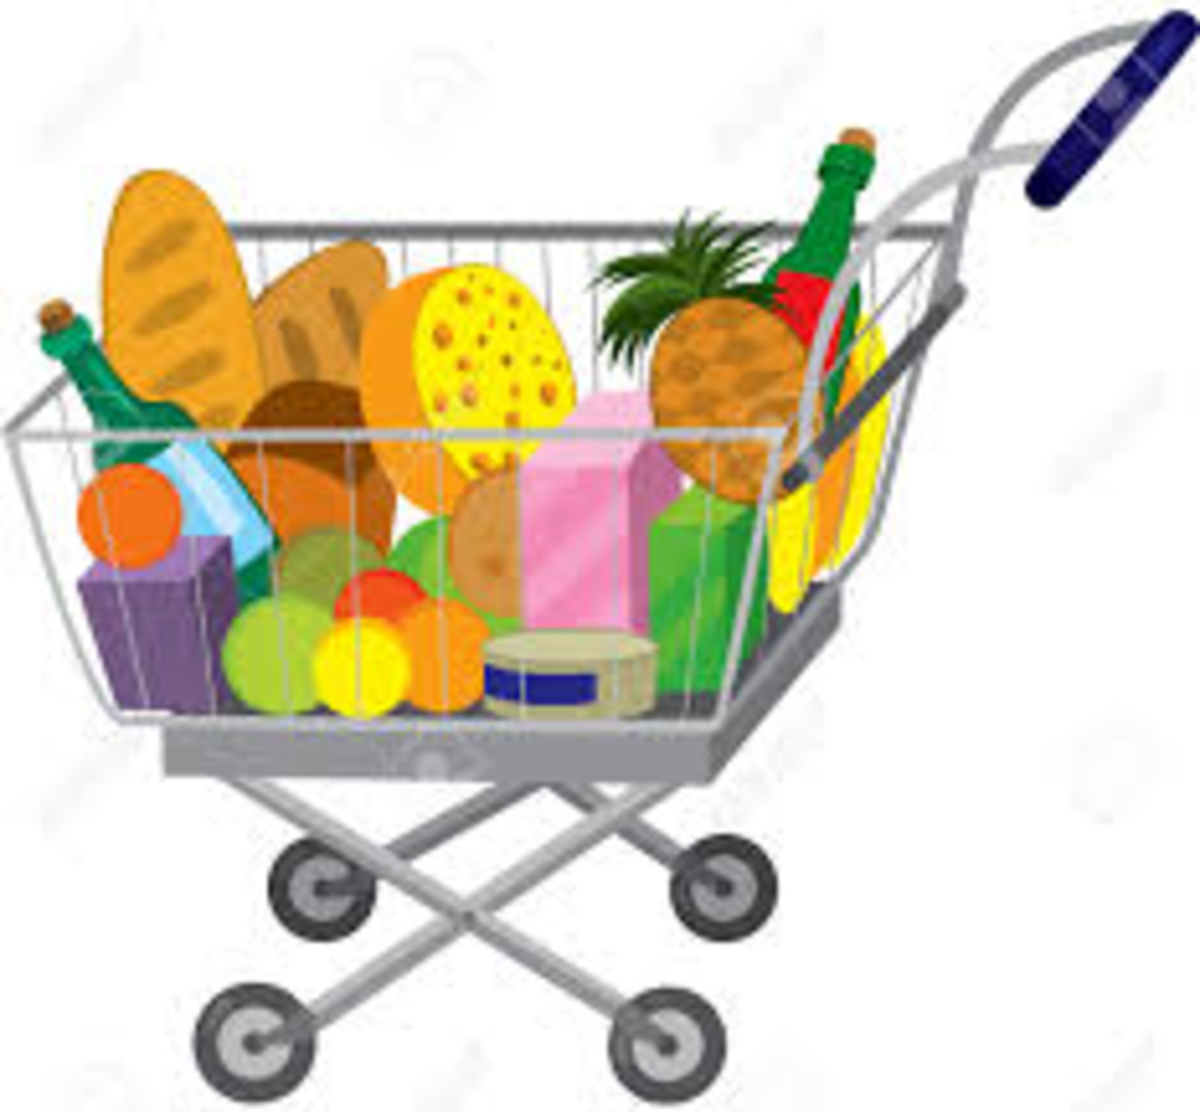 meal-plan-and-grocery-list-to-feed-2-people-for-a-month-for-100